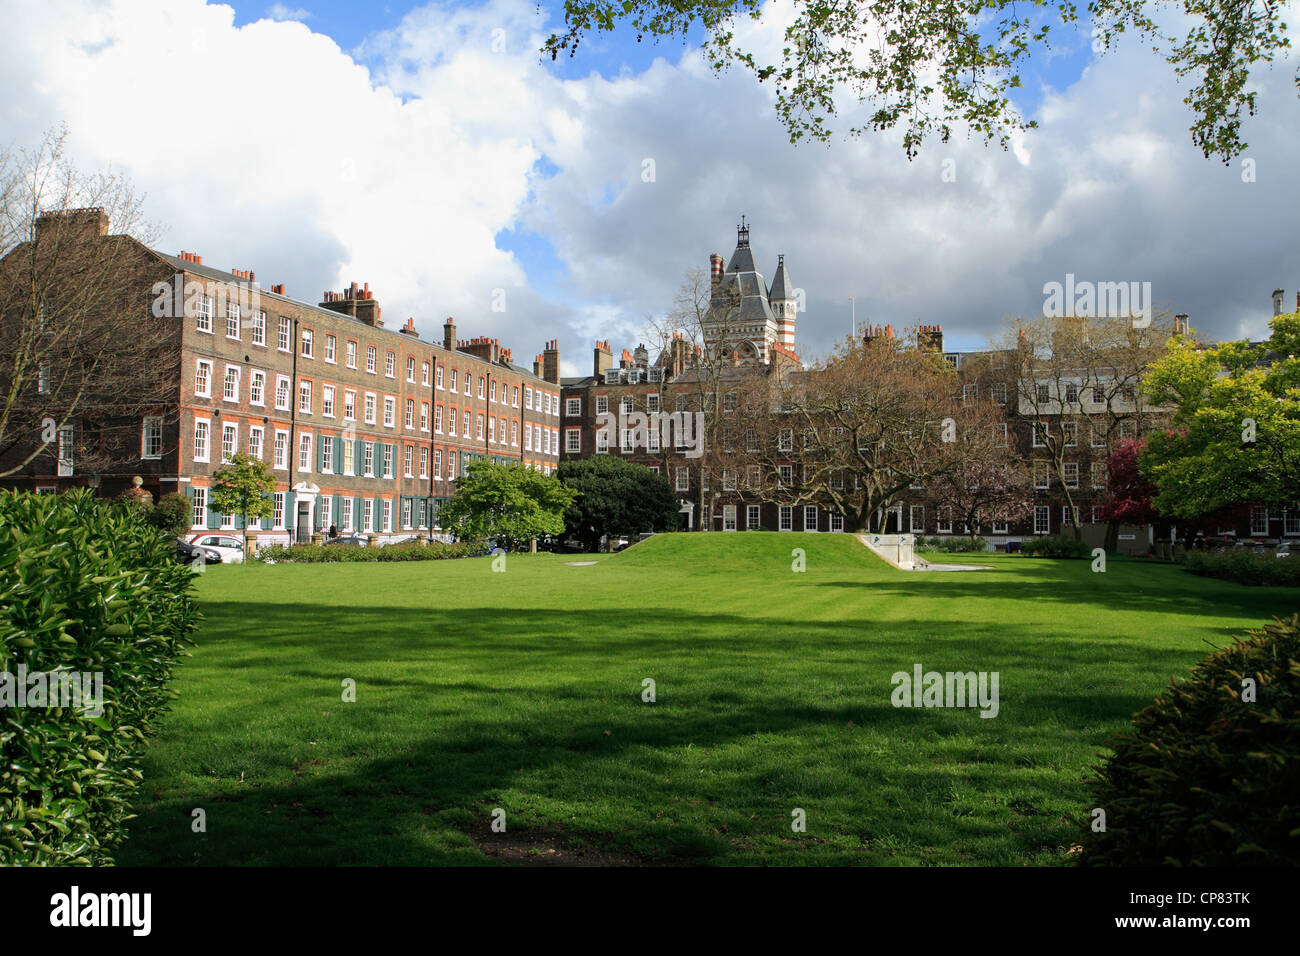 New Square, Lincoln's Inn, London, UK - Stock Image